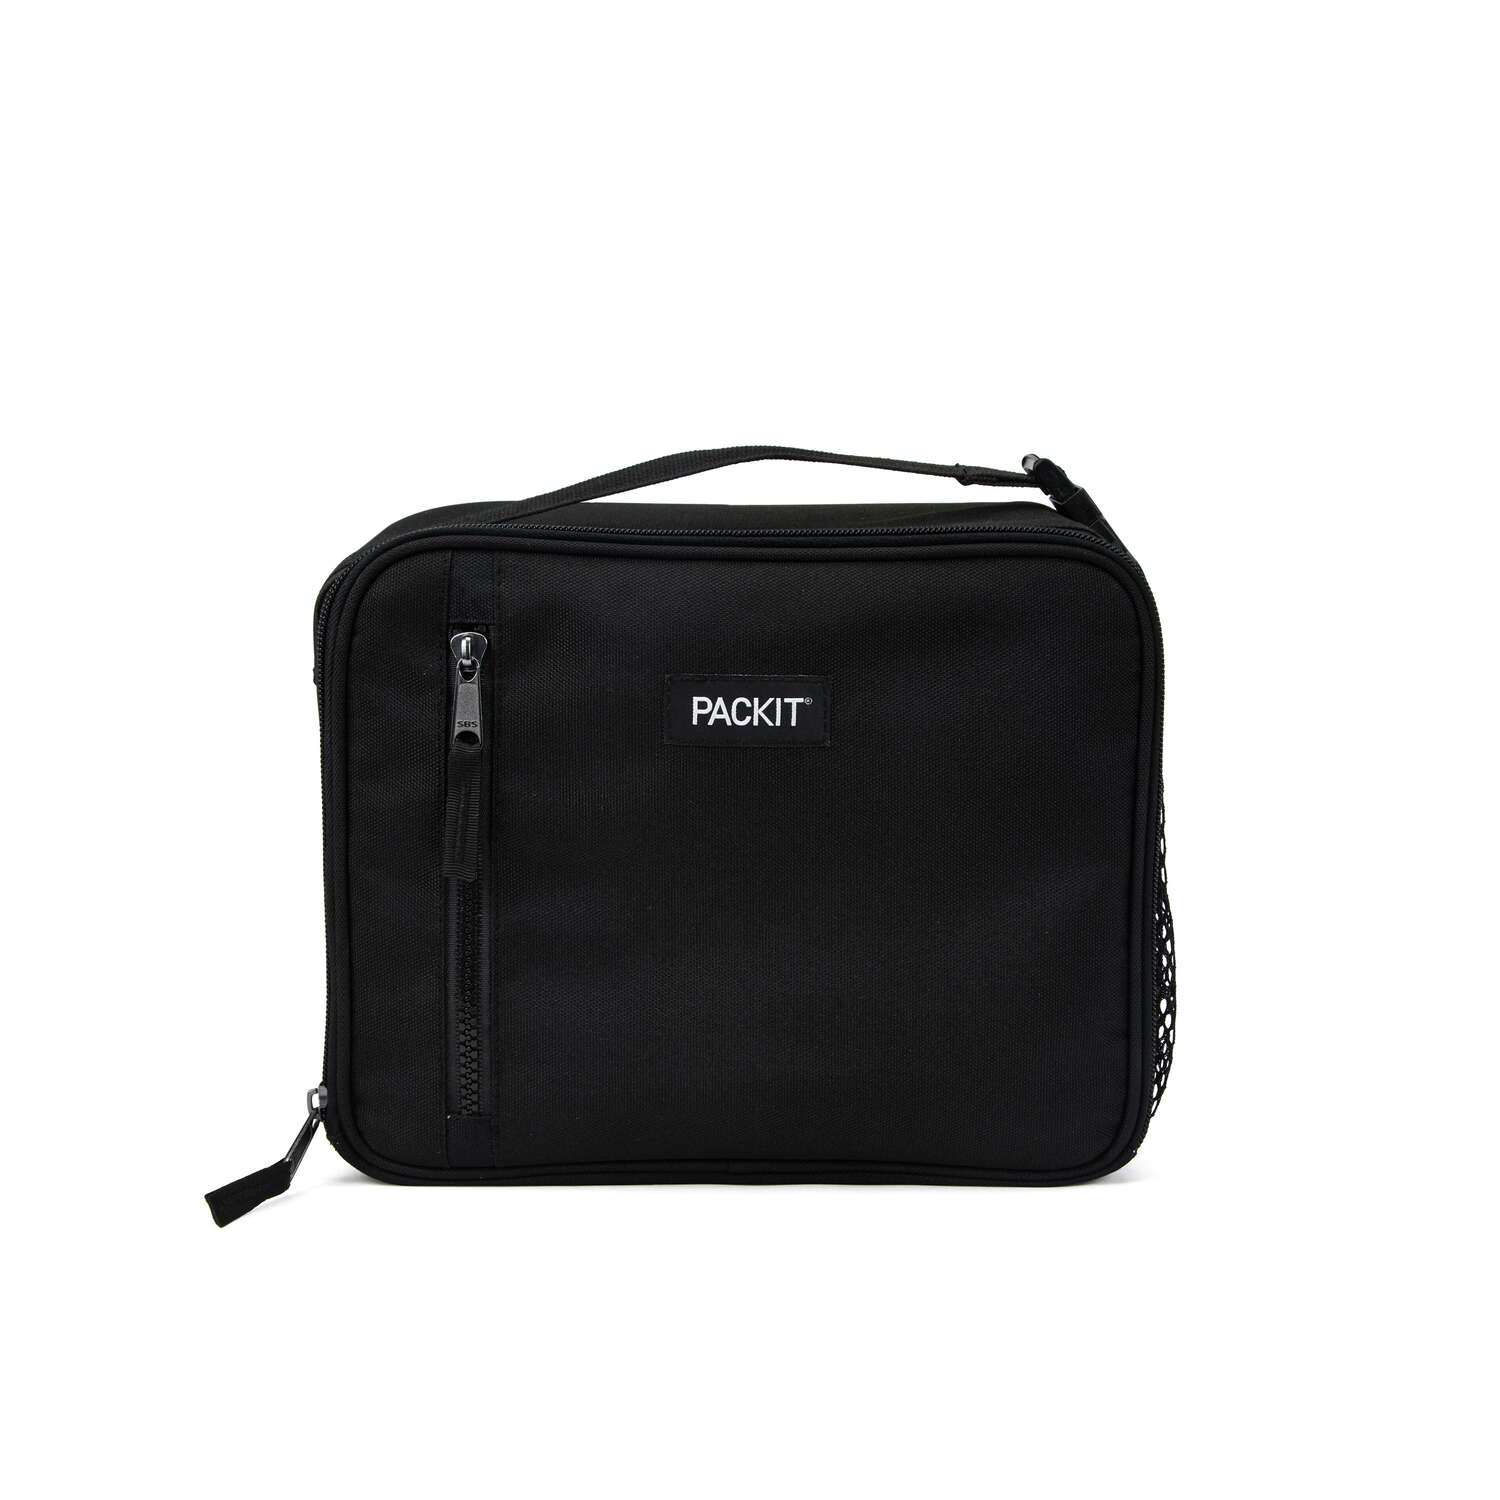 PACKIT  Lunch Bag Cooler  4.5 L Black